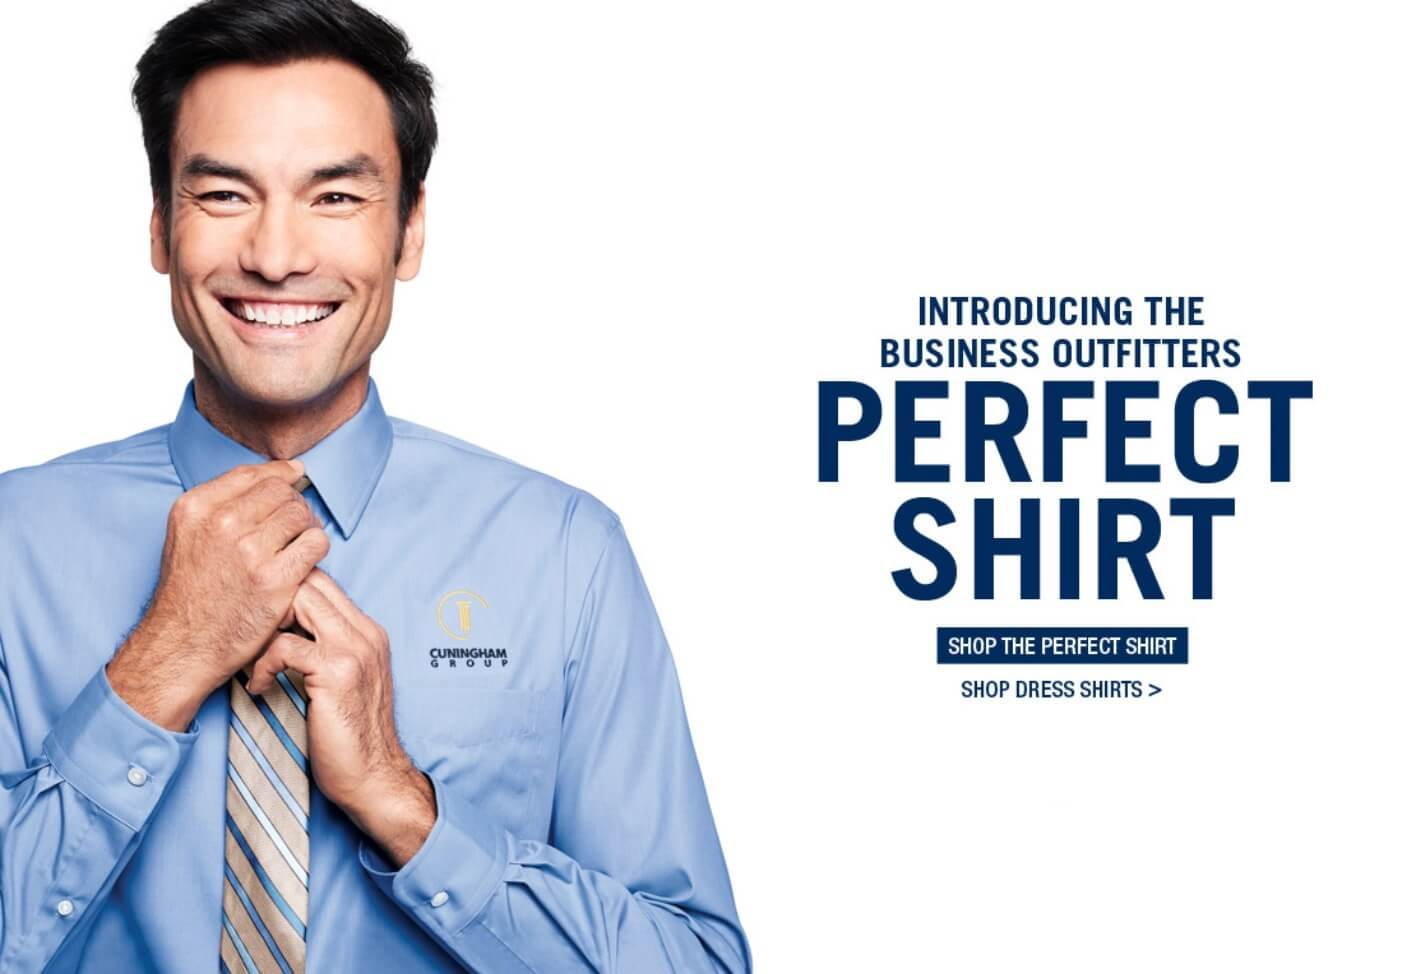 Dress Shirts For Tall Man 5 Best Brands With Shirts For Tall